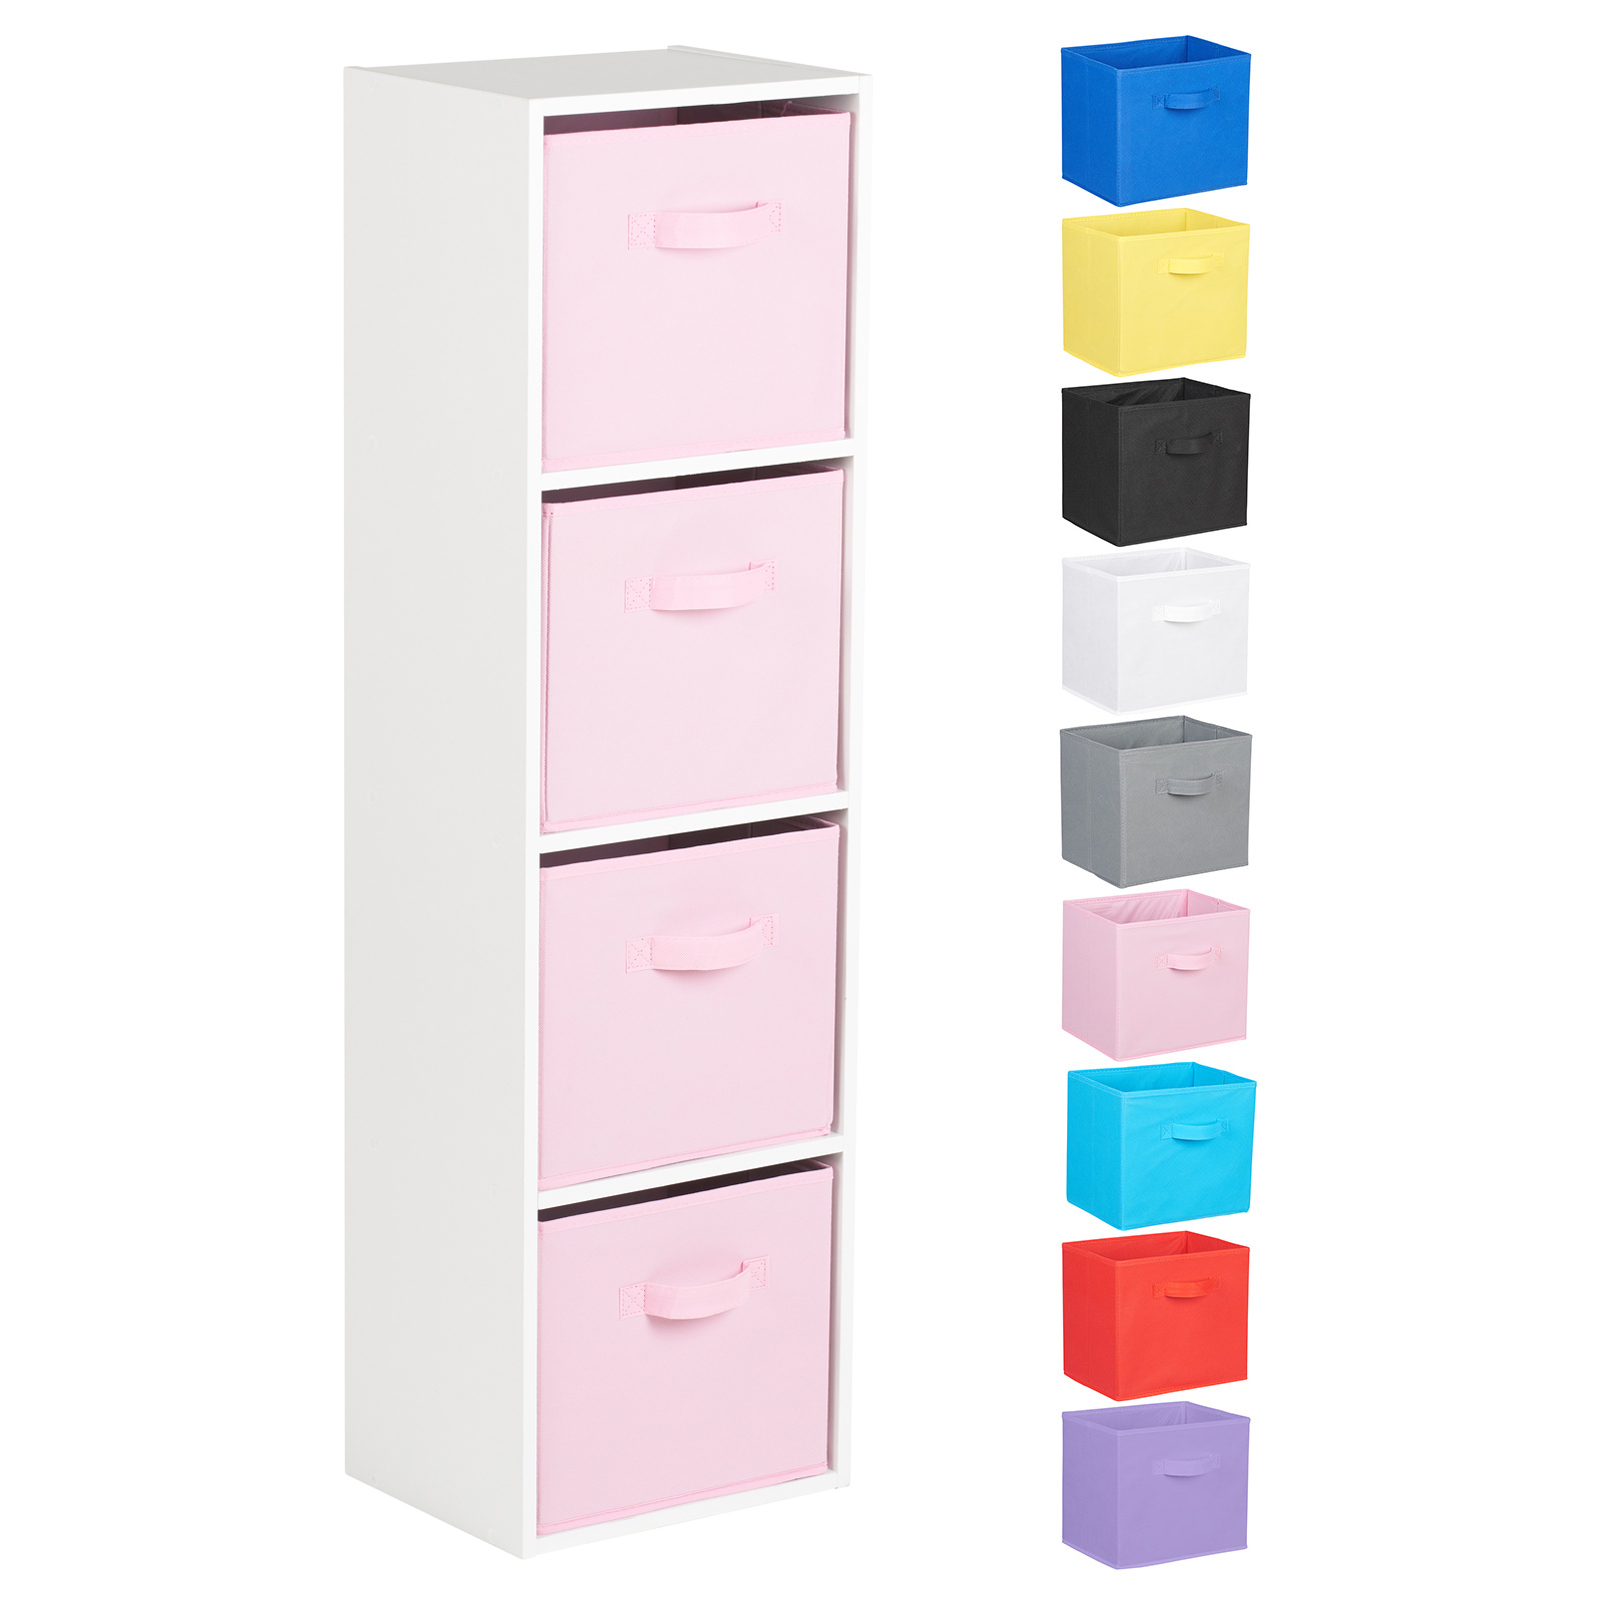 Hartleys-4-Tier-White-Bookcase-Wooden-Display-Shelving-Unit-amp-Fabric-Storage-Box thumbnail 34